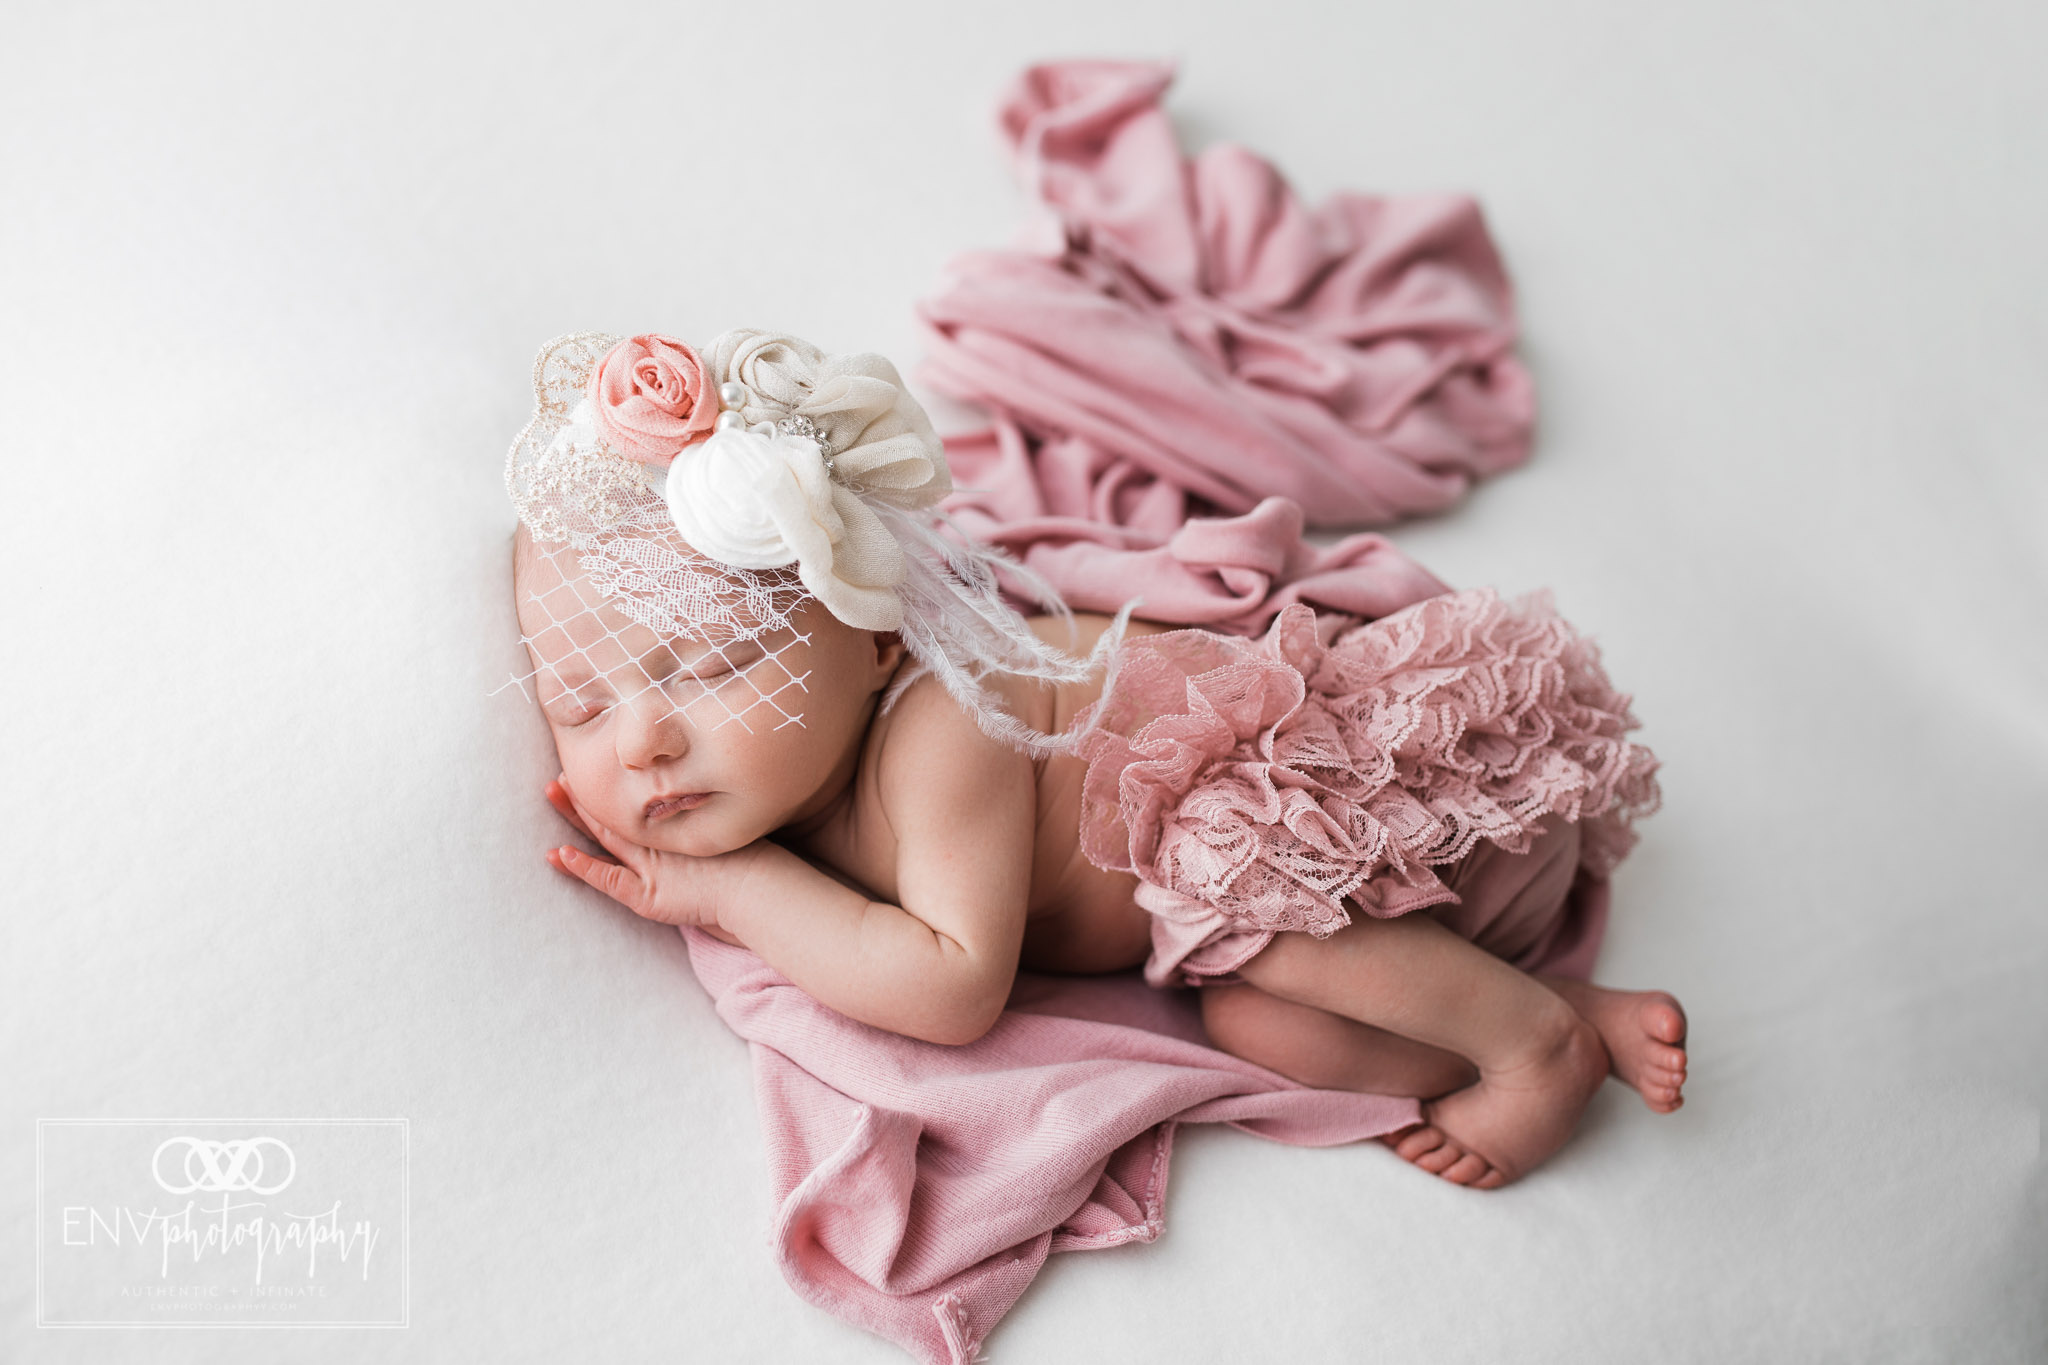 columbus ohio mount vernon ohio newborn family photographer annie (8).jpg